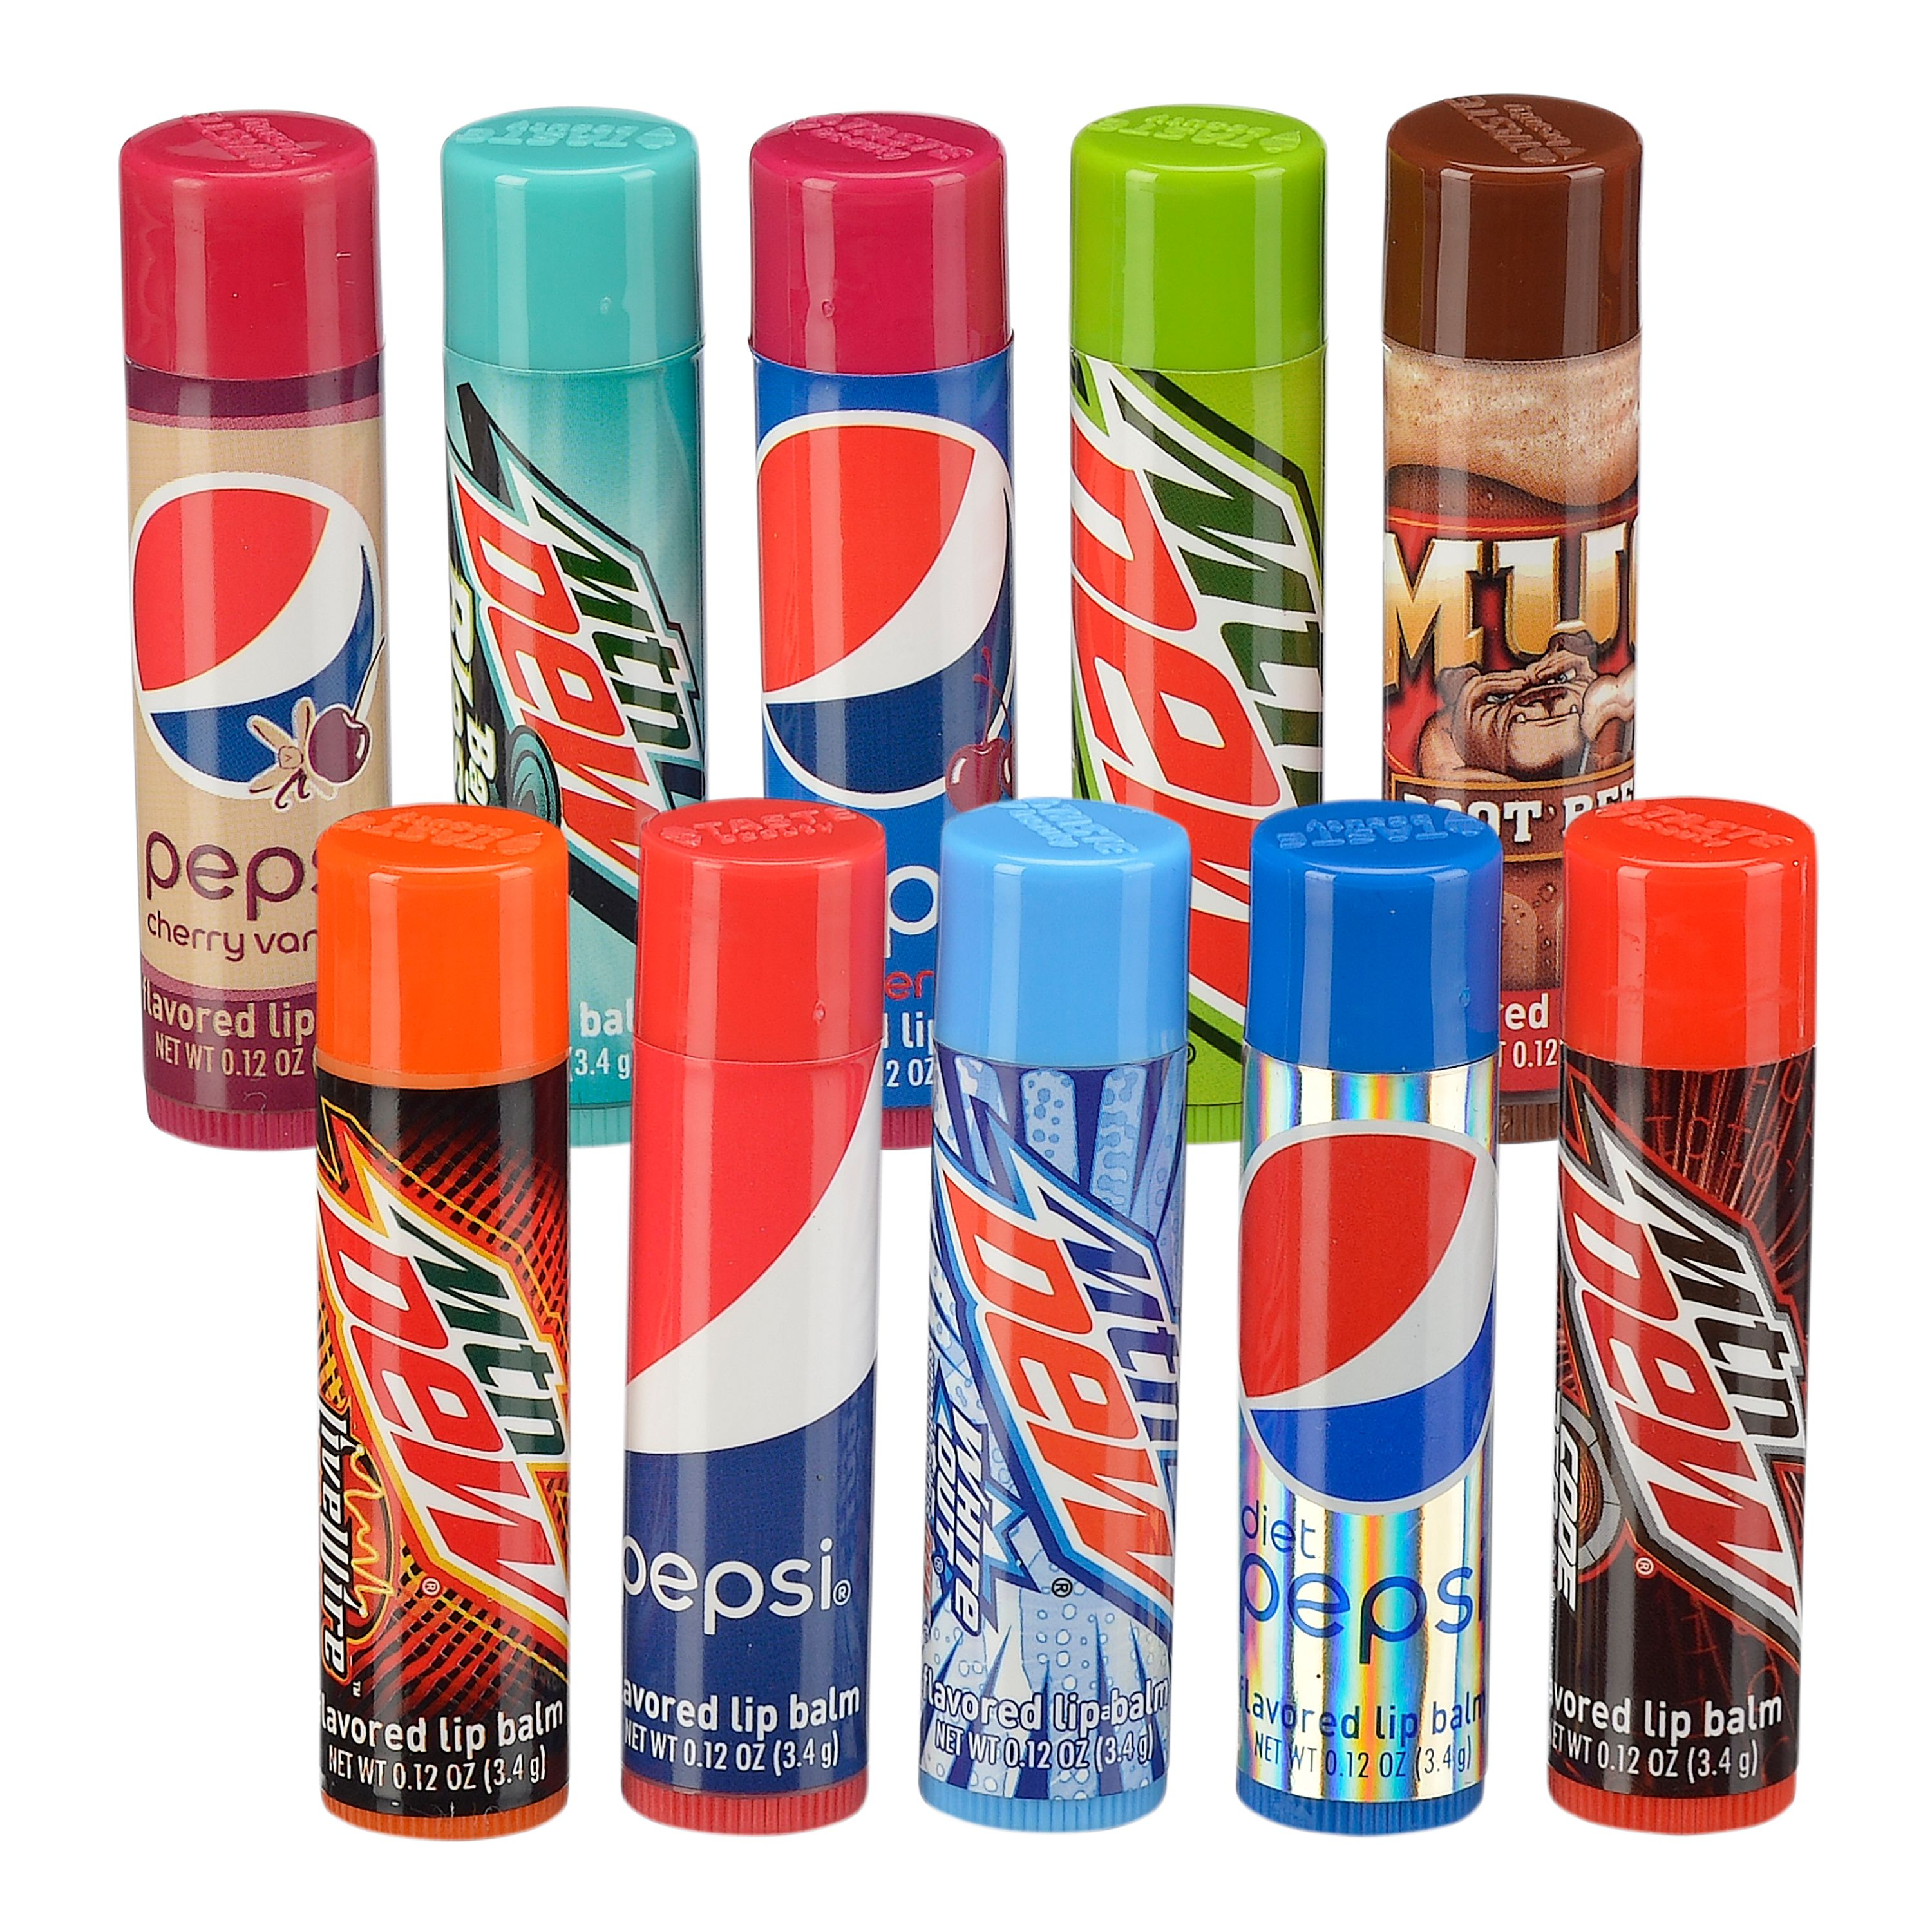 Pepsi Cola Soda Flavored Lip Balm Variety Pack, 10 Pieces ($9.99 Value)